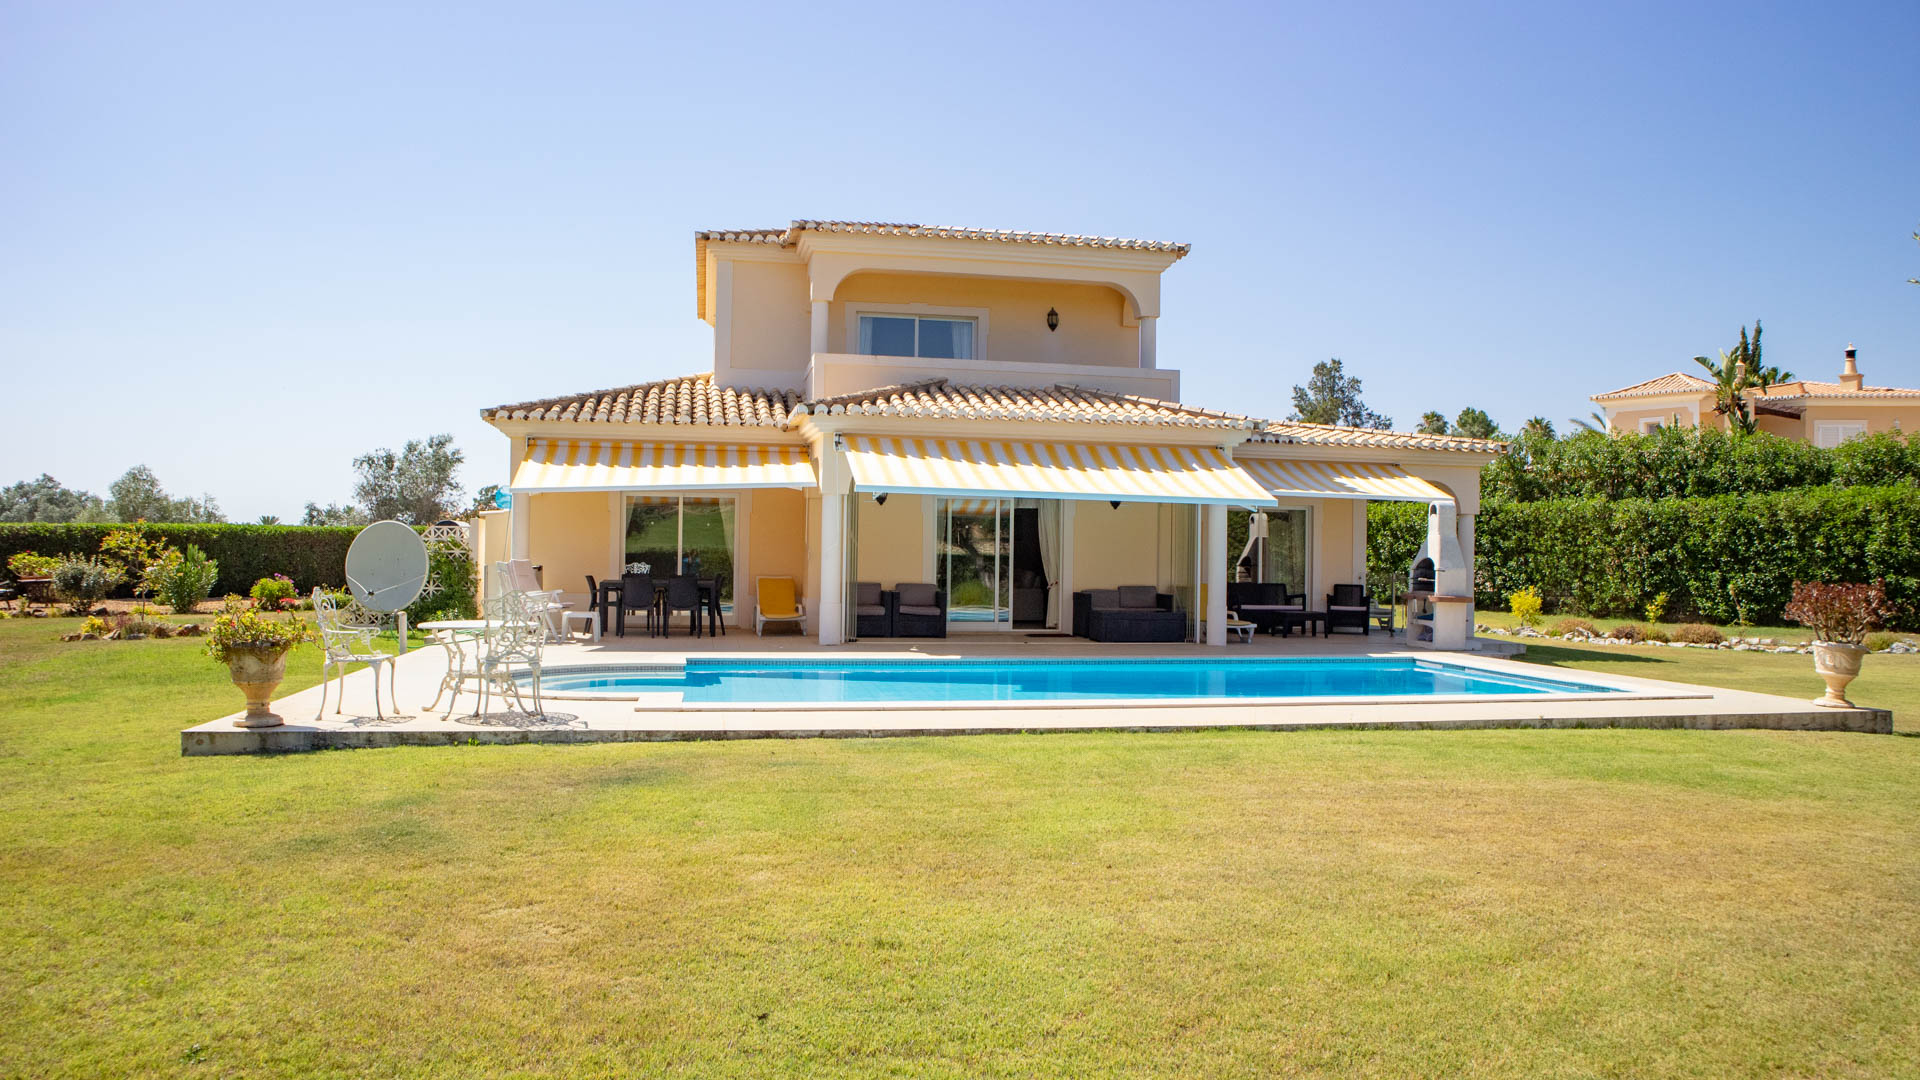 3 Bedroom Villa with private pool on Golf near Carvoeiro | PCG1490 An immaculate villa on a golf course, with 3 bedrooms, remodelled kitchen, abundant terracing and suitable for all-year round living. Complete with swimming pool, landscaped gardens and close proximity to all nearby golf facilities.